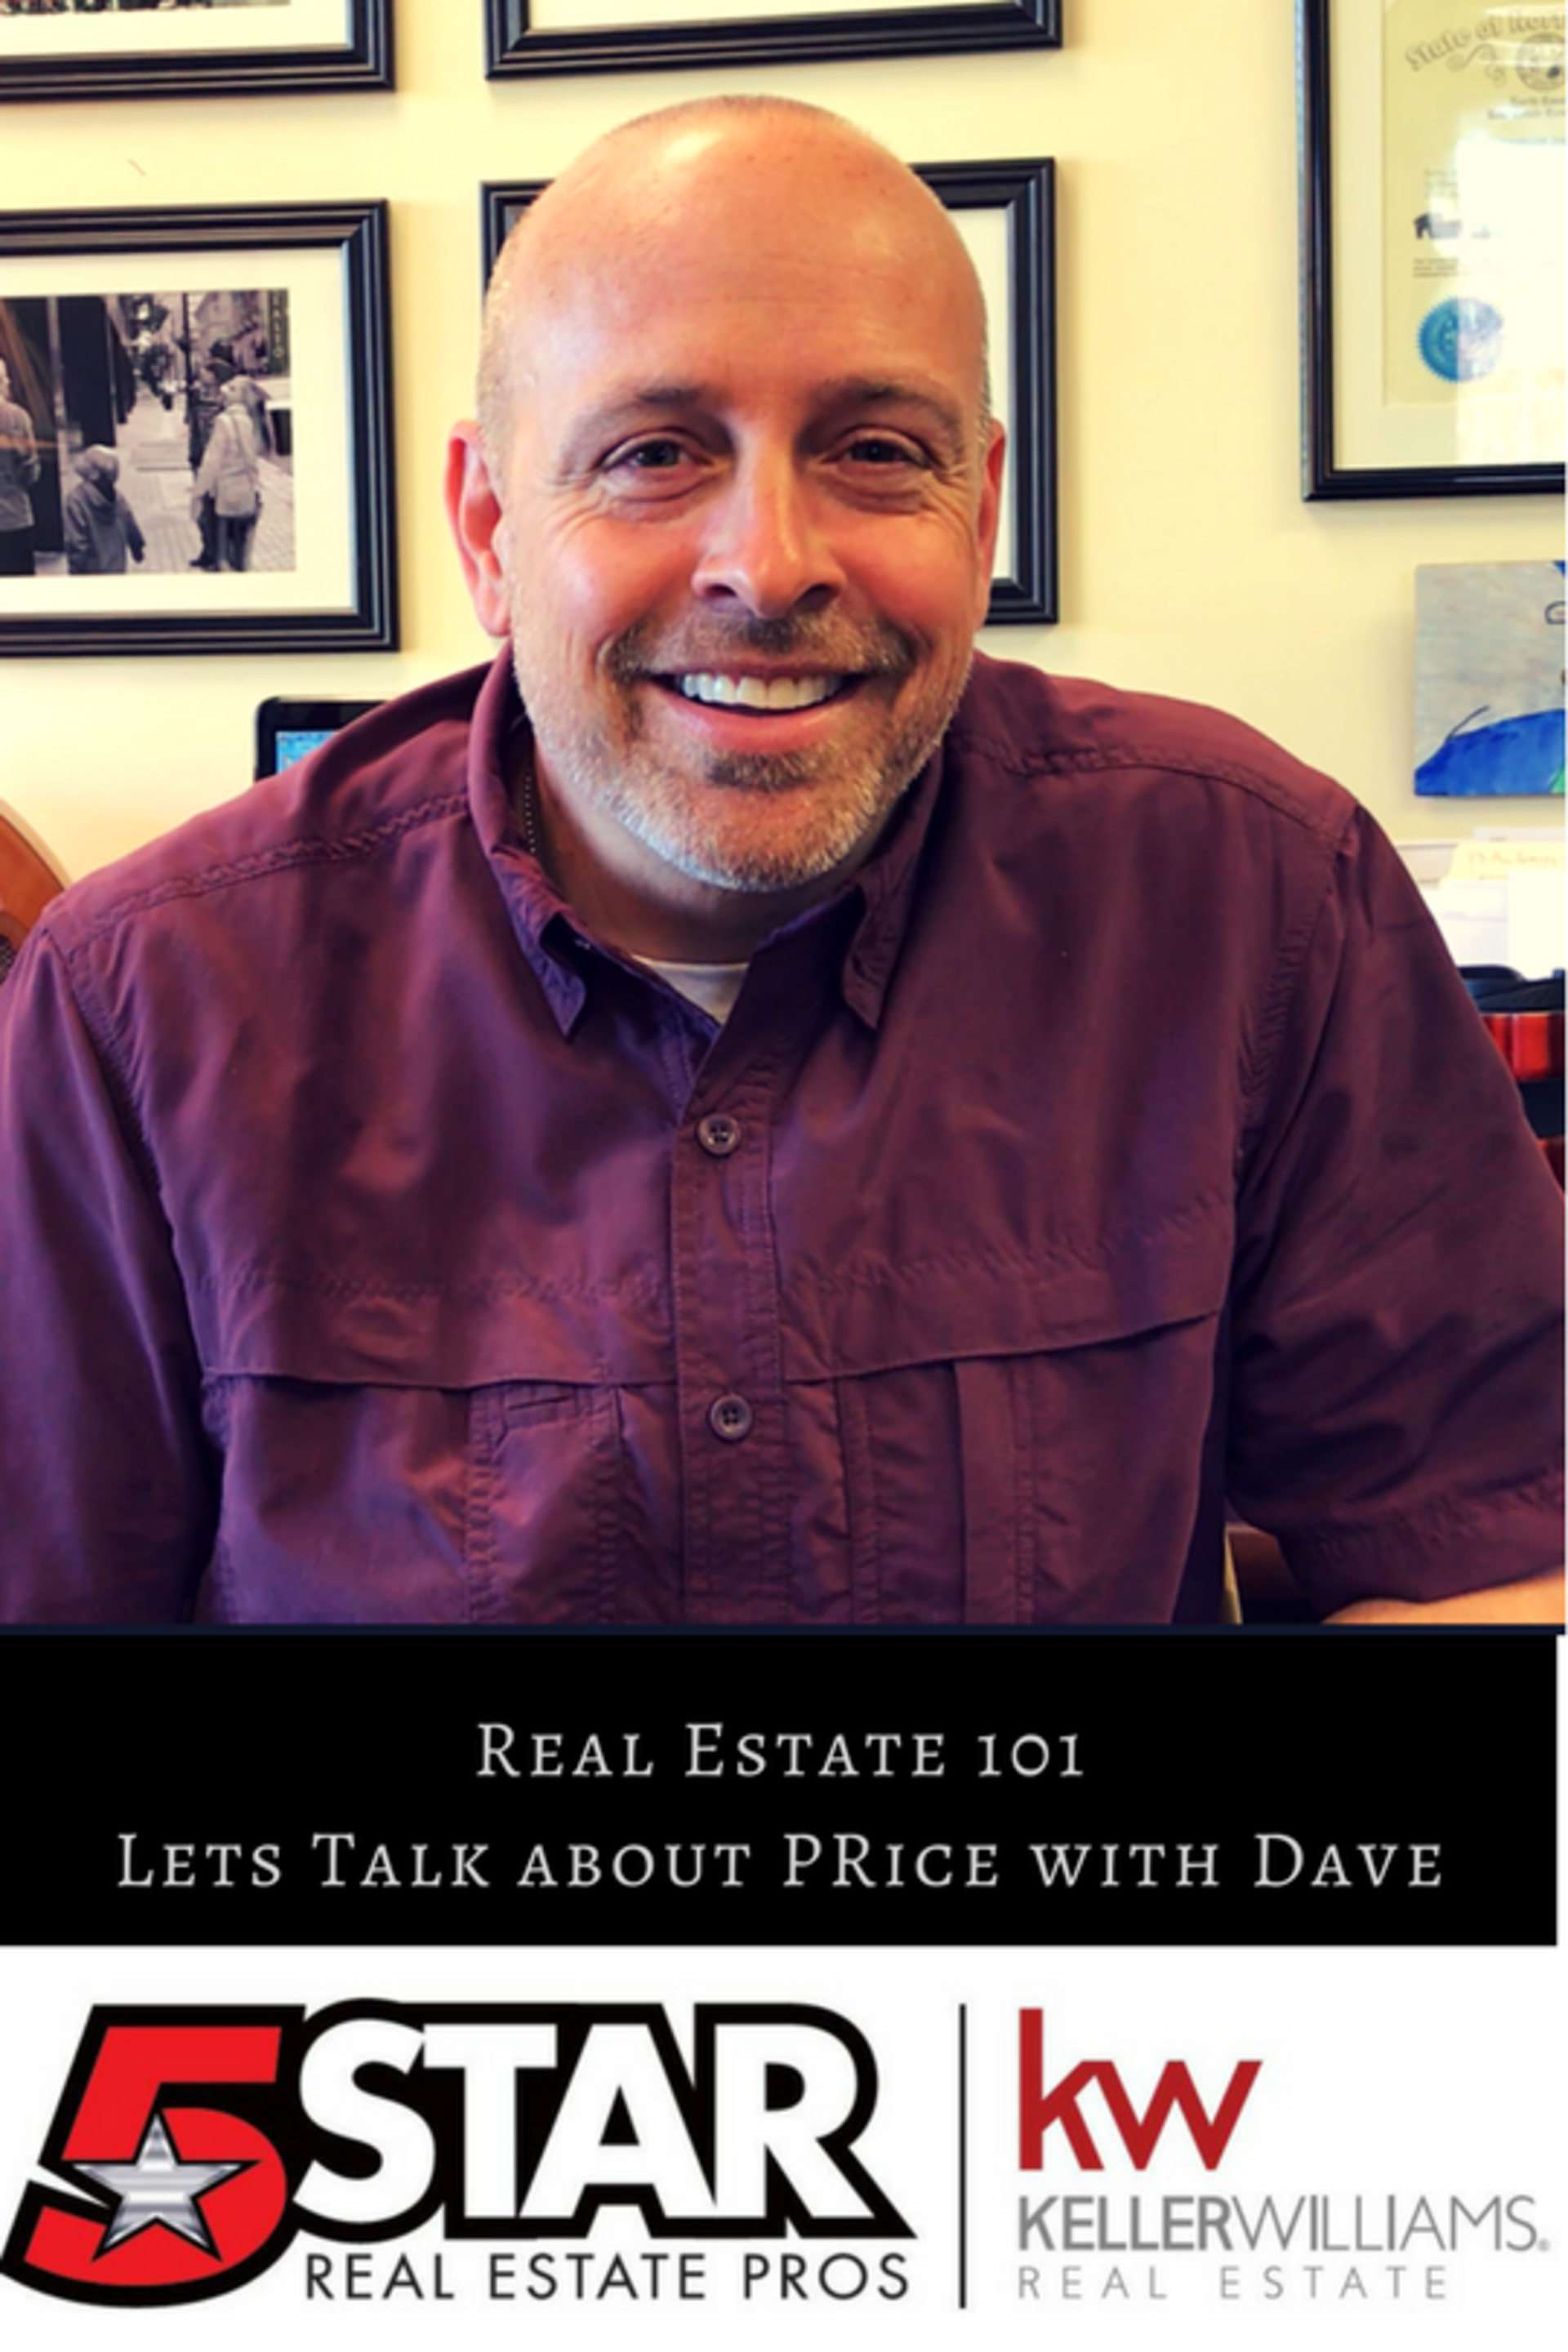 Let's talk about price with Dave